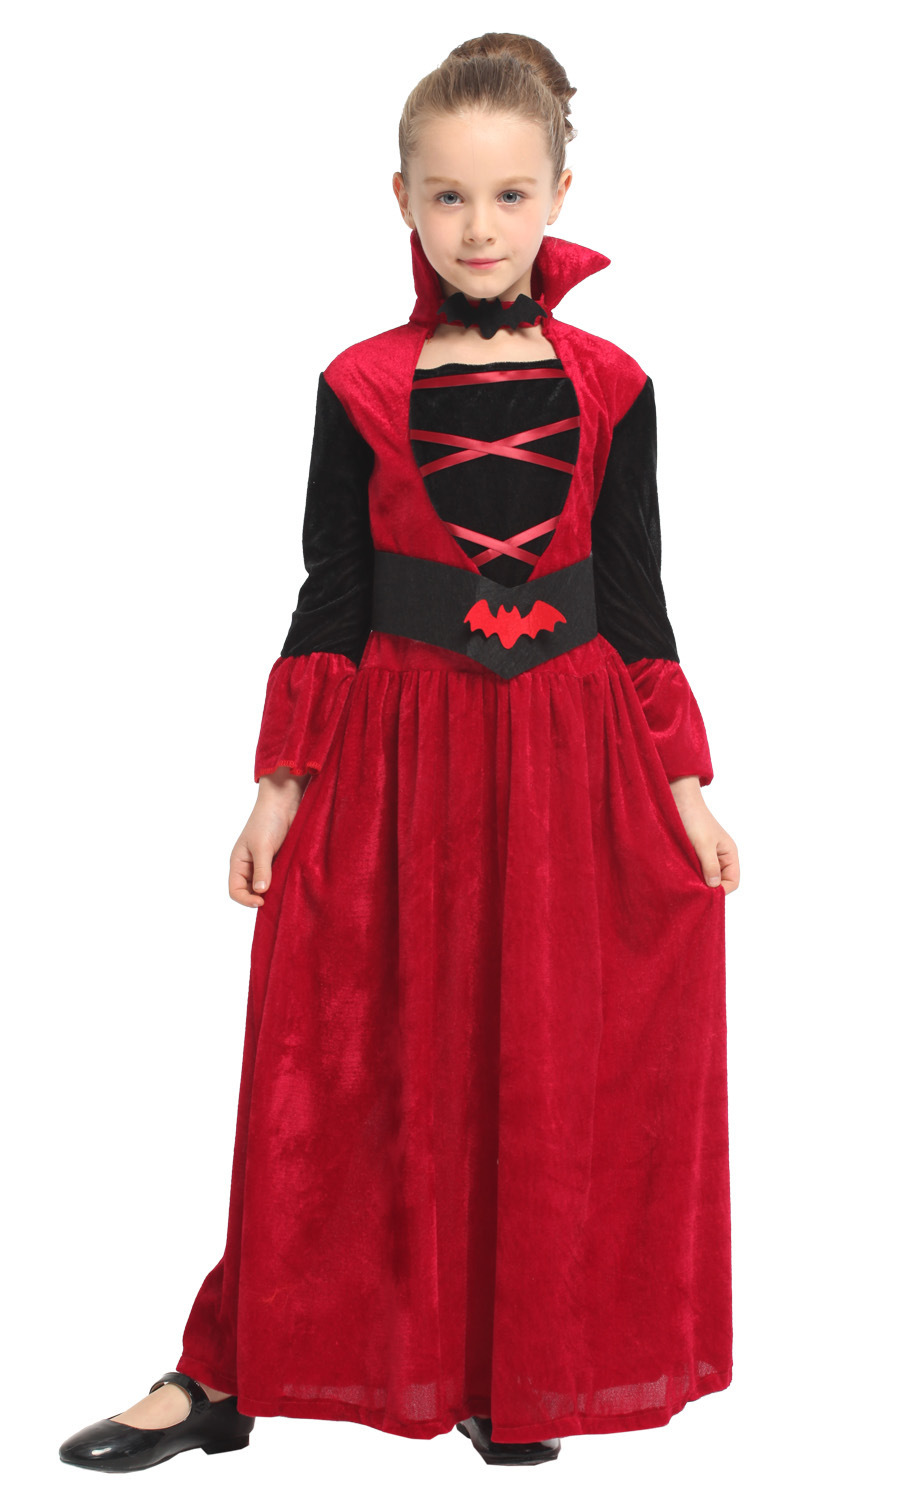 new year halloween costume for kids vampire witch anime cosplay costumes carnaval christmas girl children child boys fancy dress 1